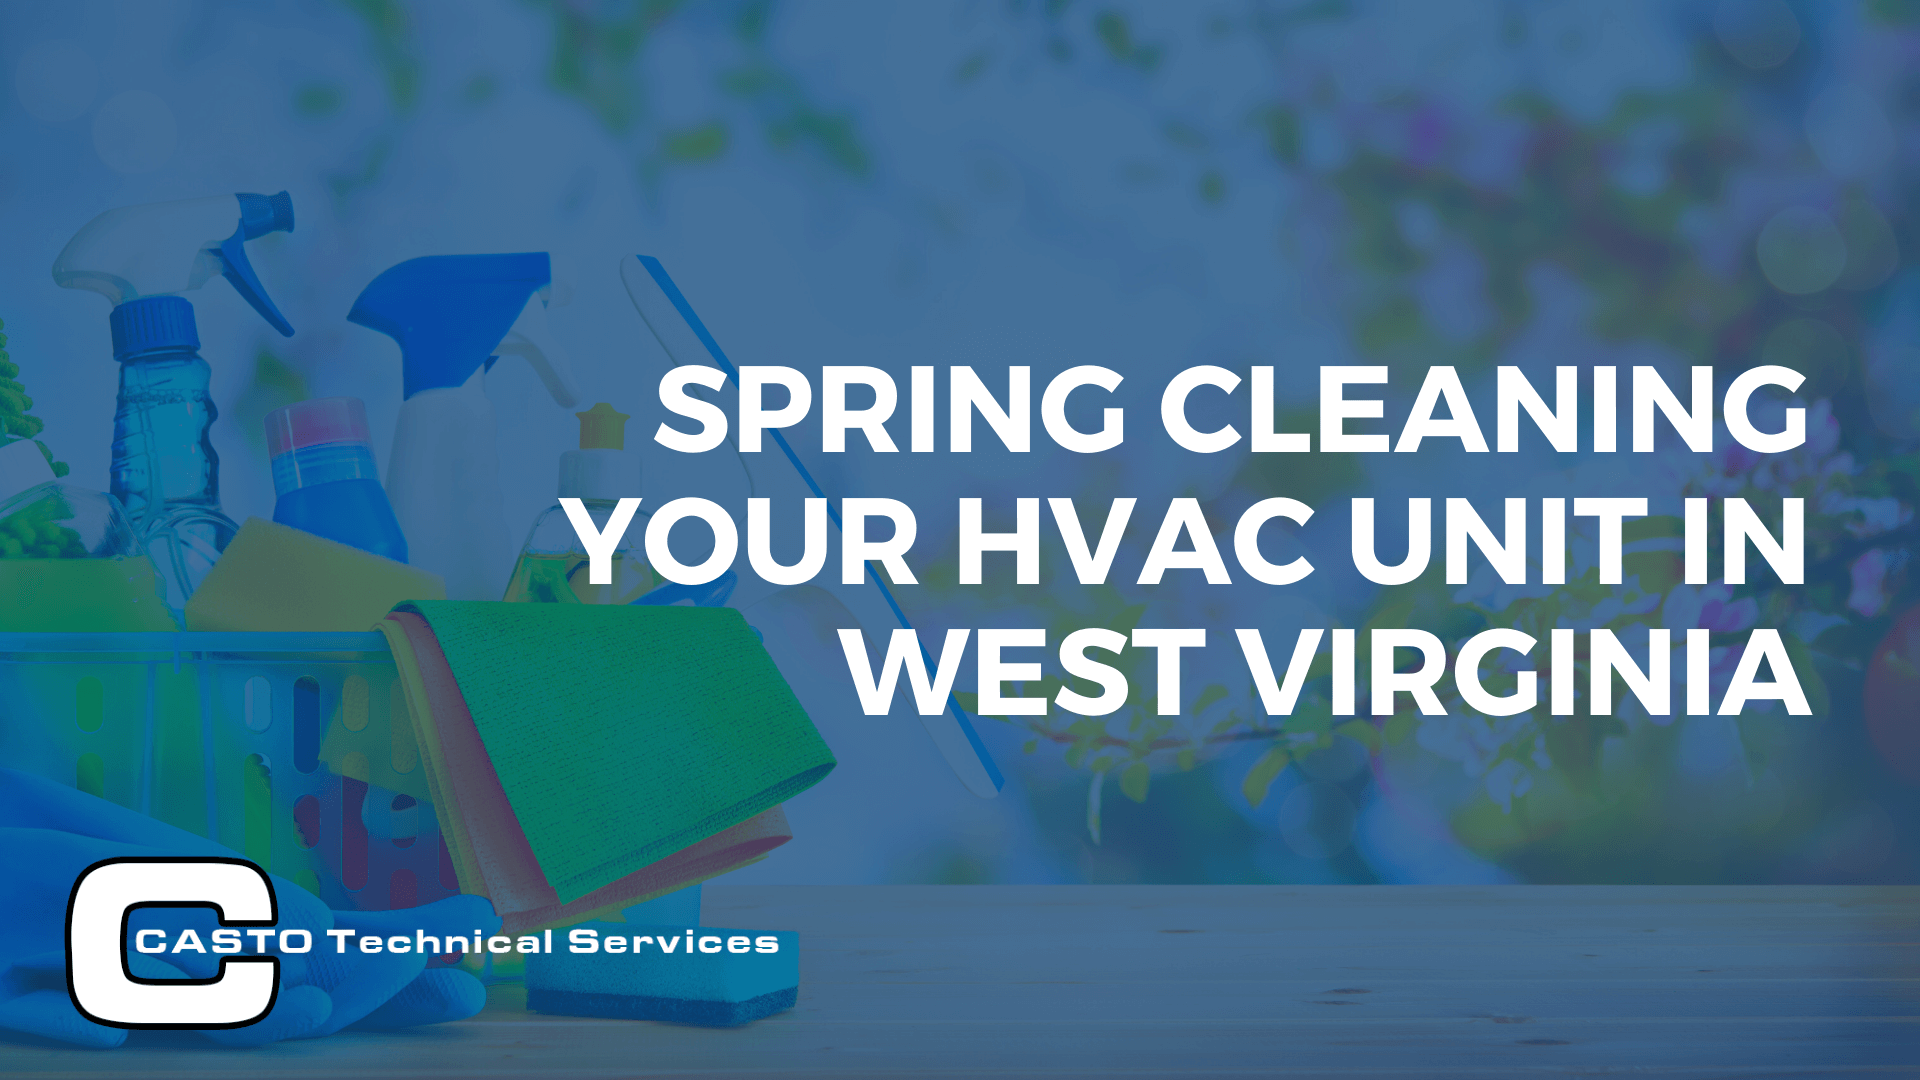 Spring Cleaning Your HVAC Unit in West Virginia - Casto Tech